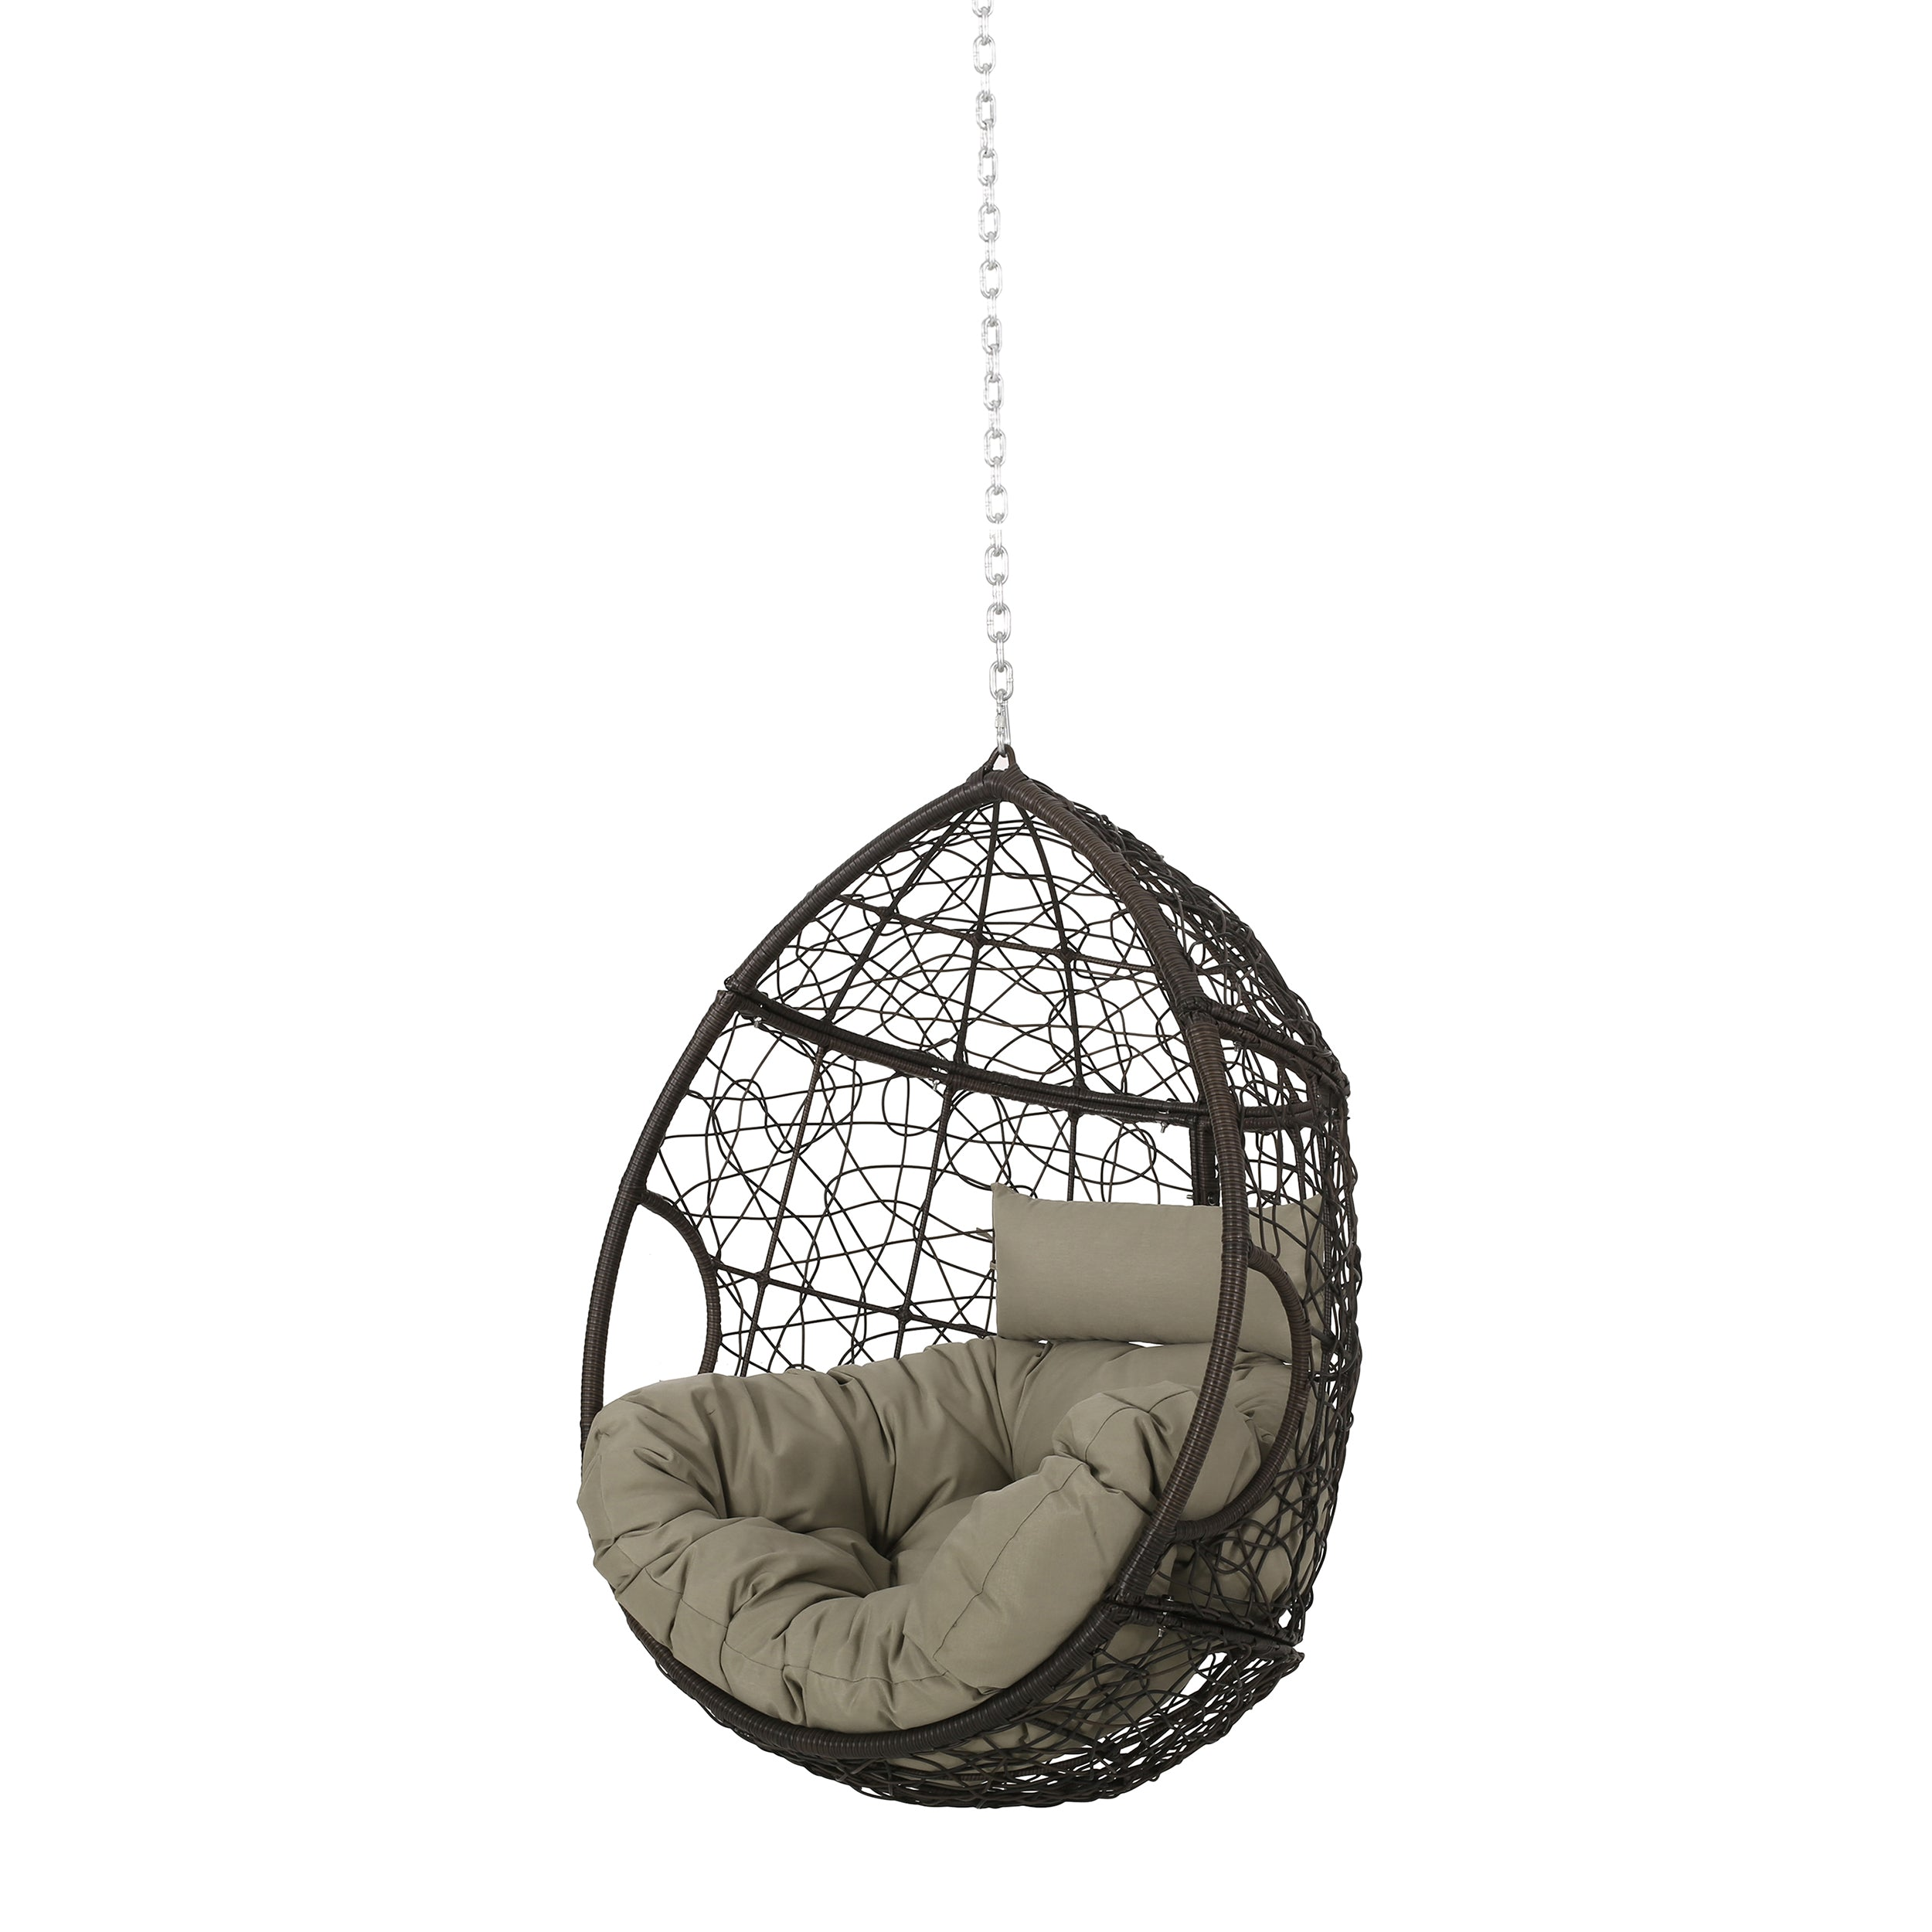 Alannah Outdoor and Indoor Wicker Hanging Chair with 8 Foot Chain NO STAND Multi BrownKhaki